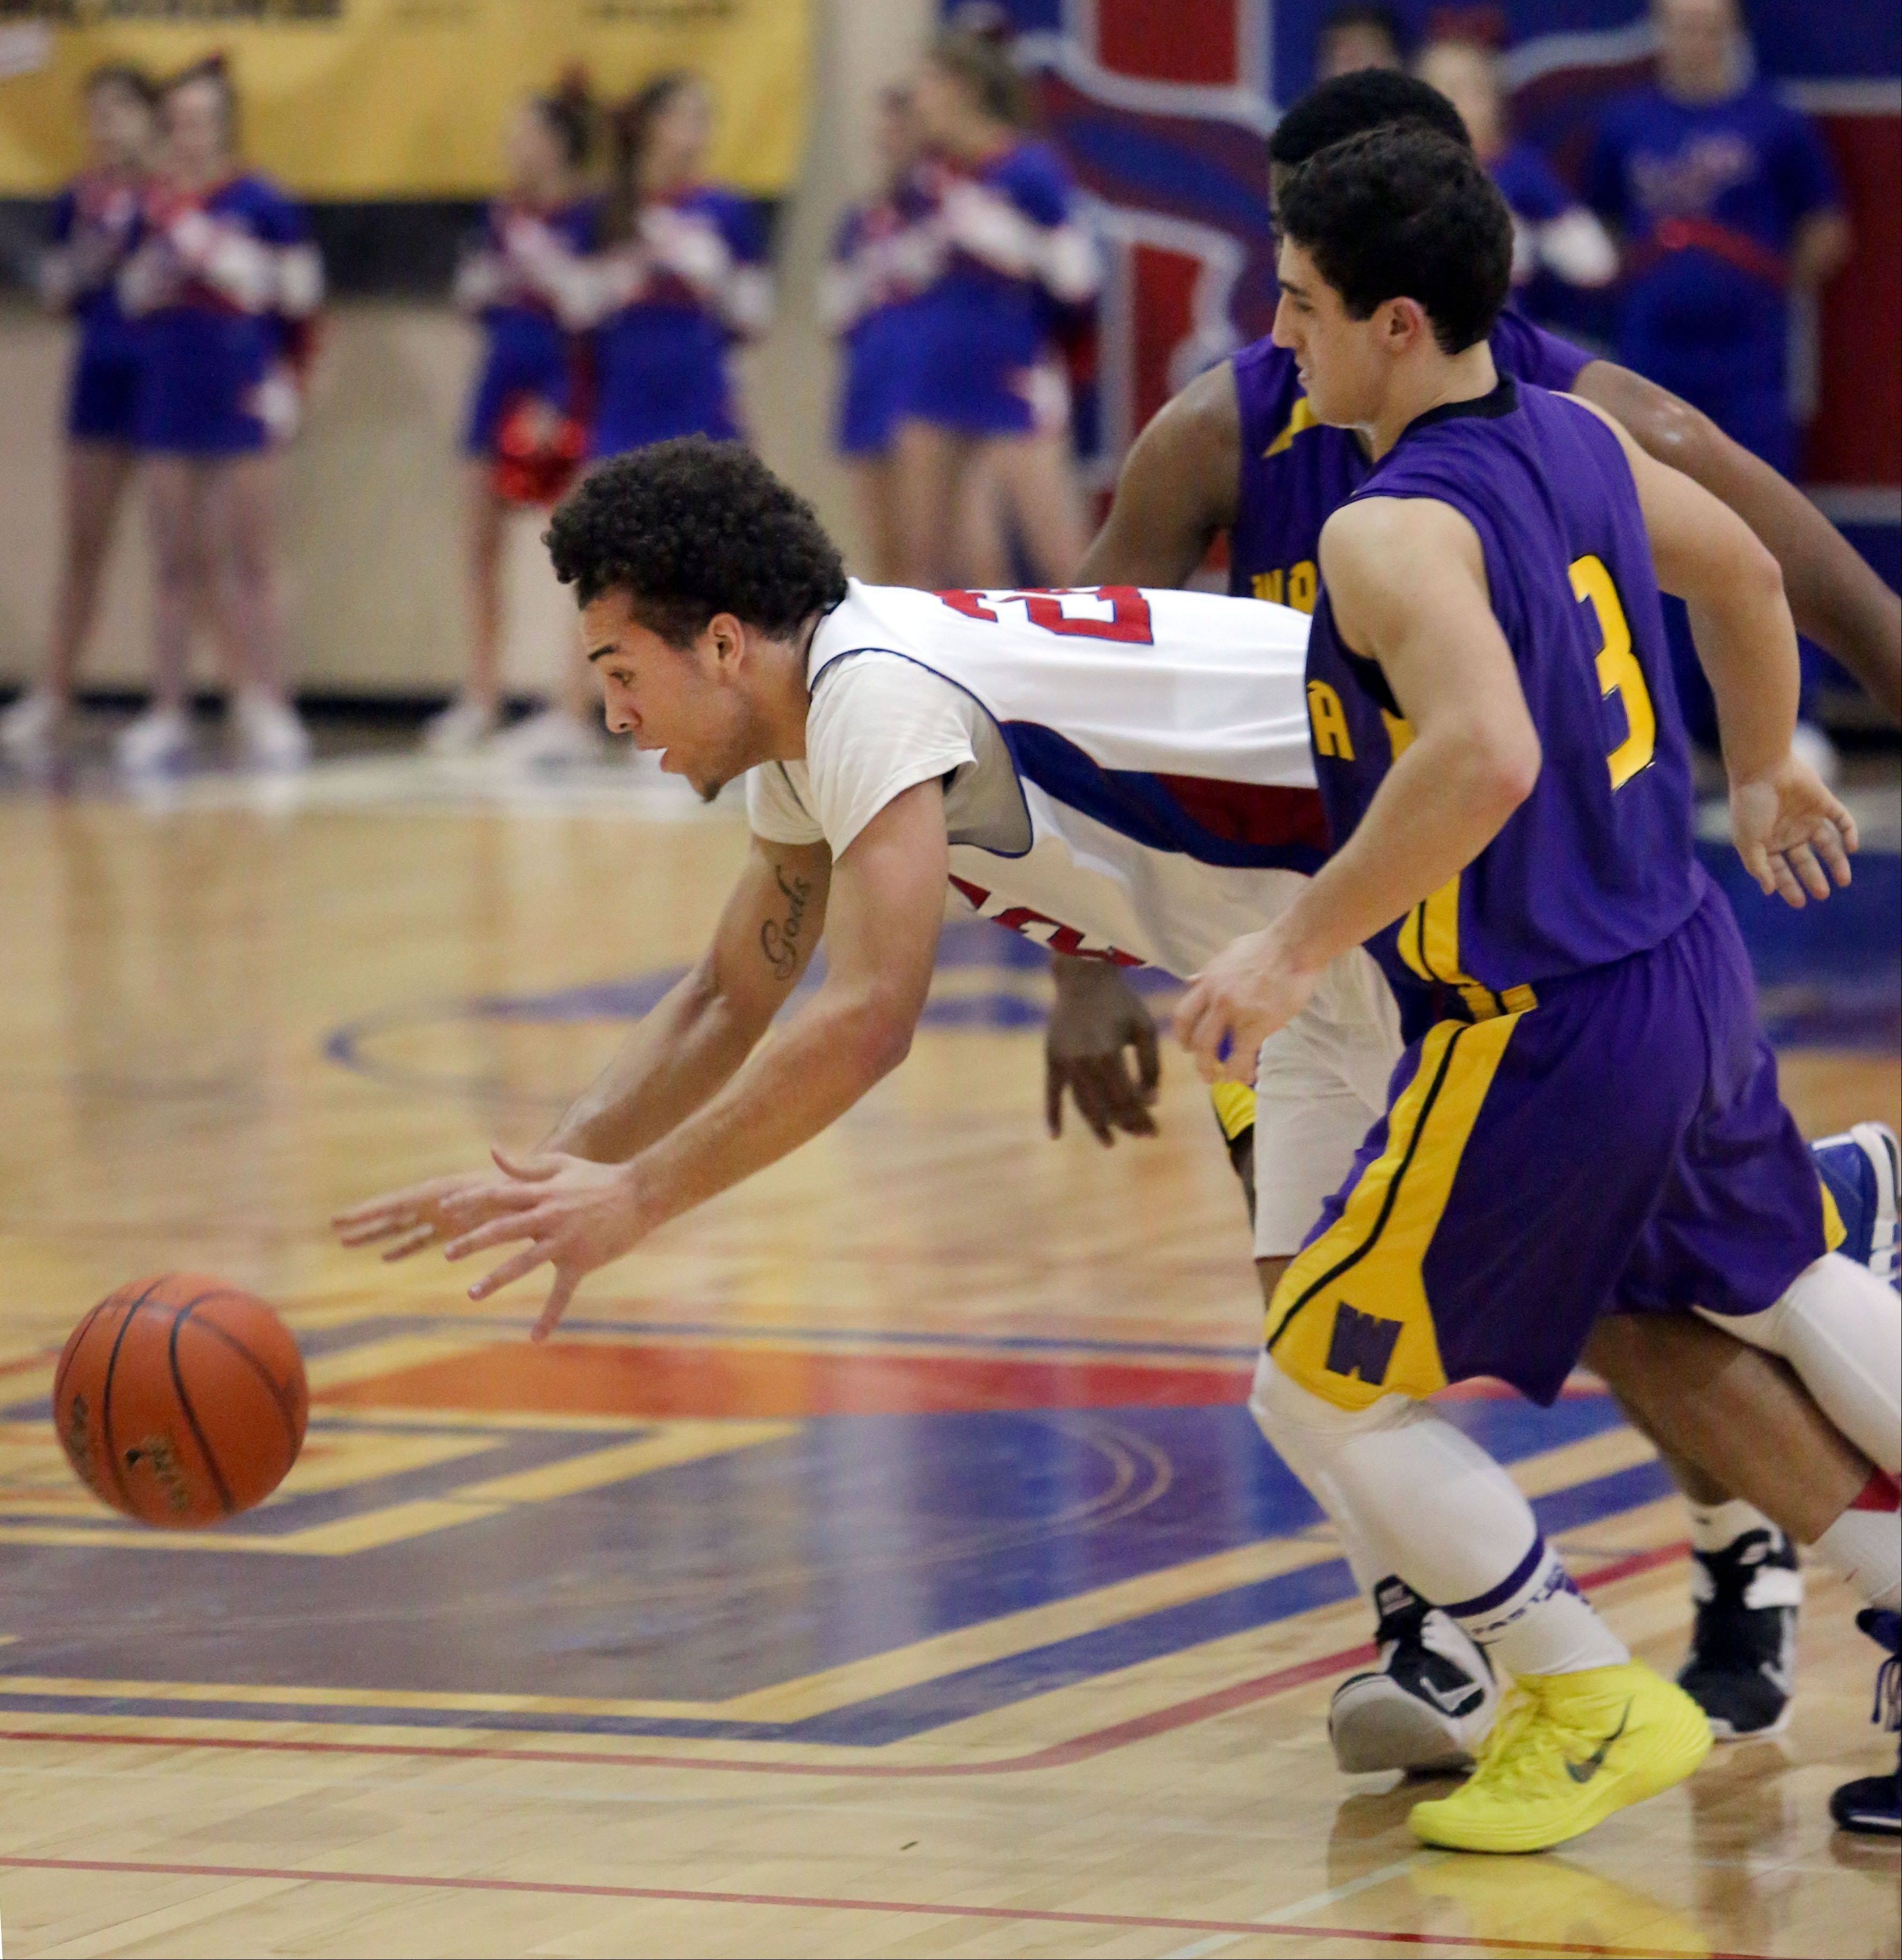 Lakes' Tramone Hudson dives for a loose ball as Wauconda's Joey Lovelle defends.